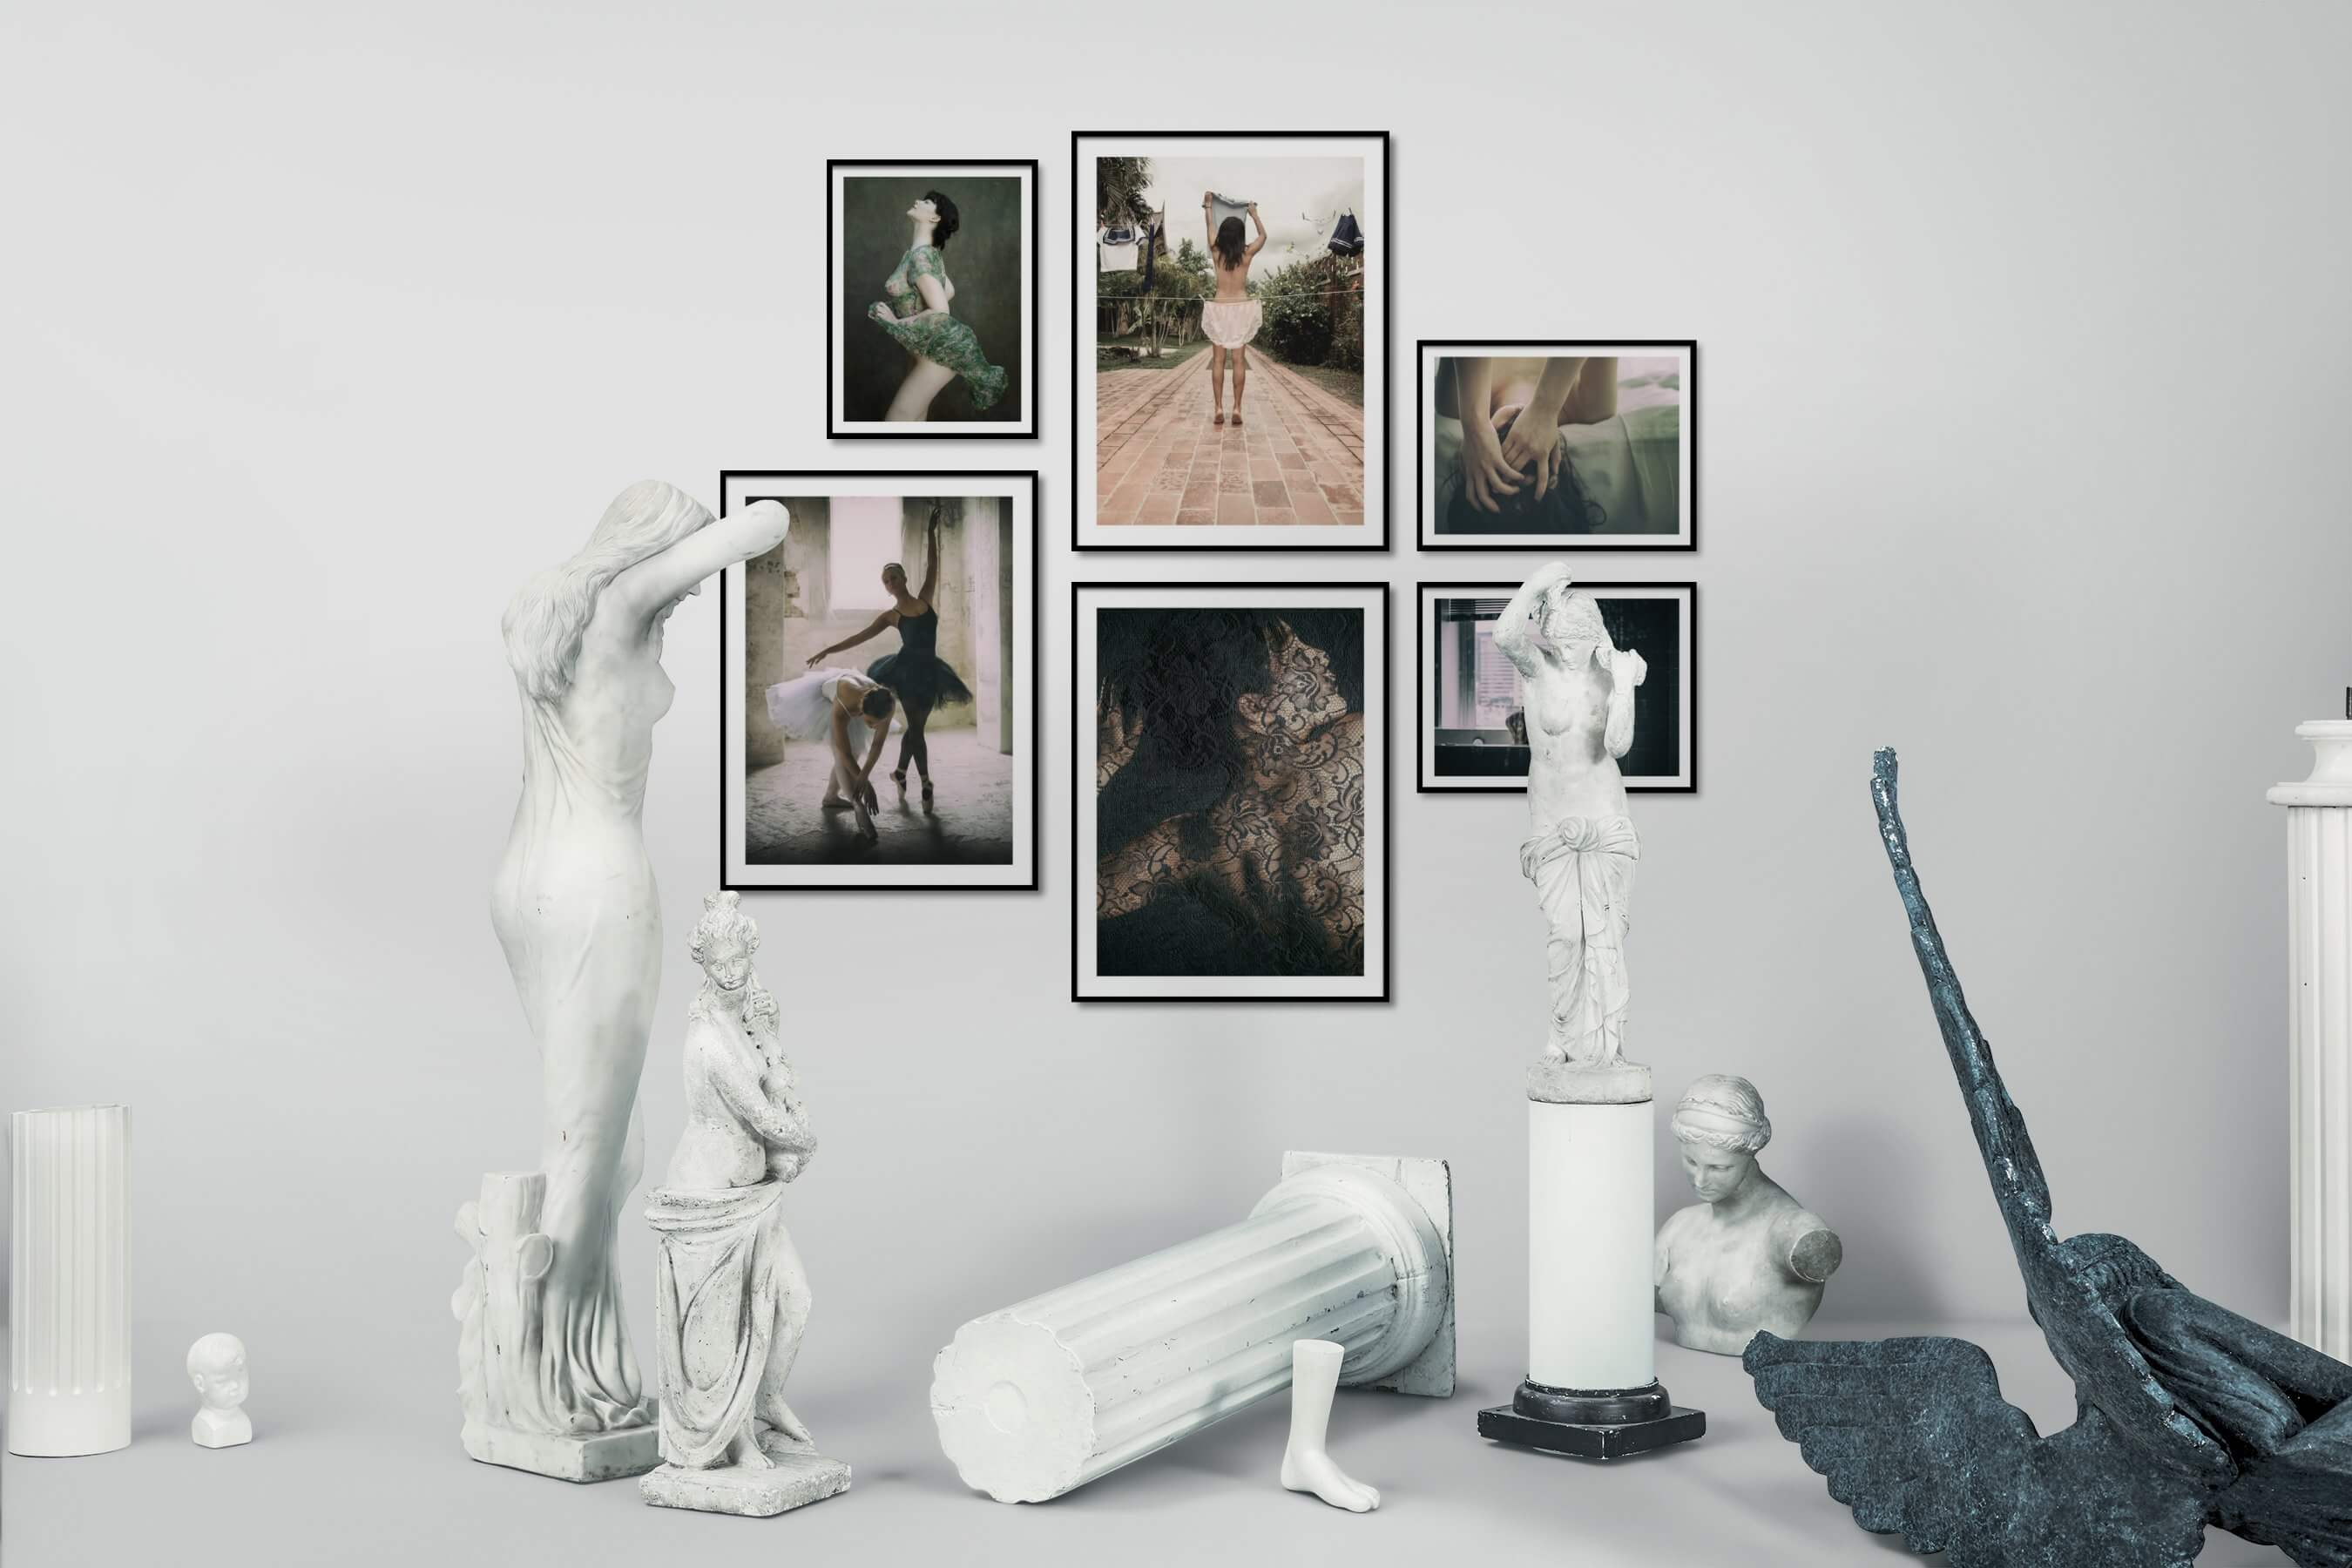 Gallery wall idea with six framed pictures arranged on a wall depicting Fashion & Beauty, Artsy, and City Life